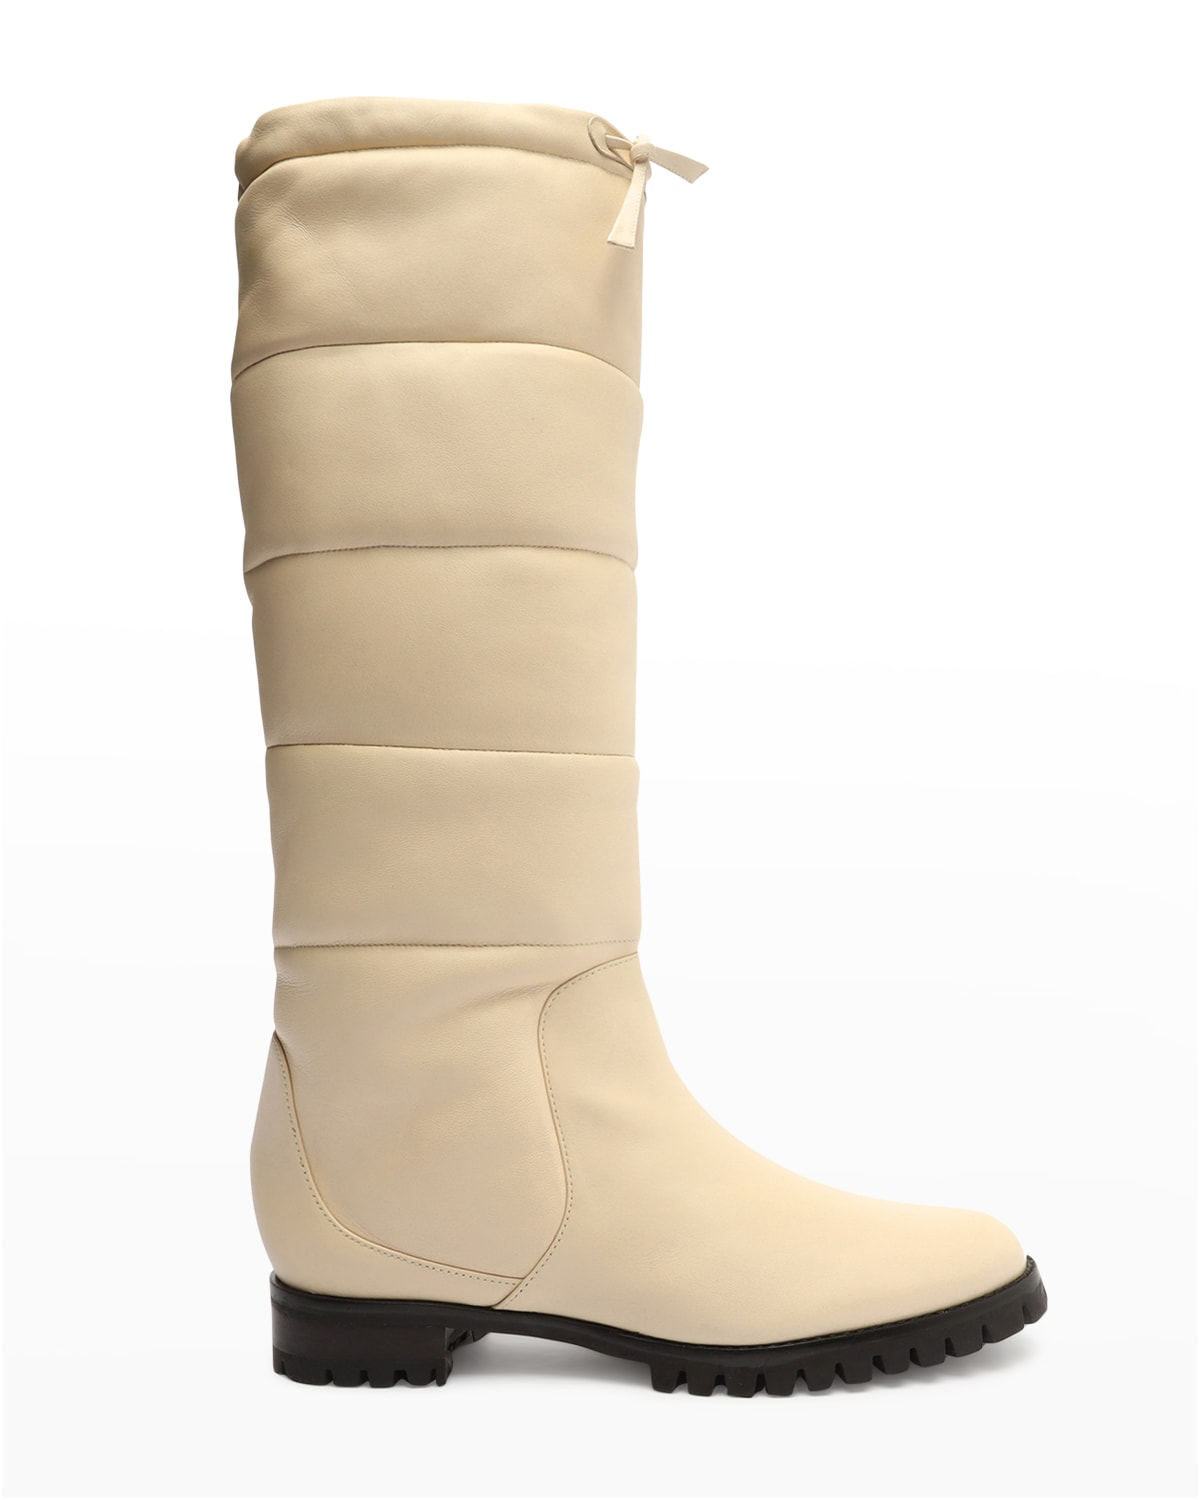 Clarita Puff Quilted Zip Tall Boots